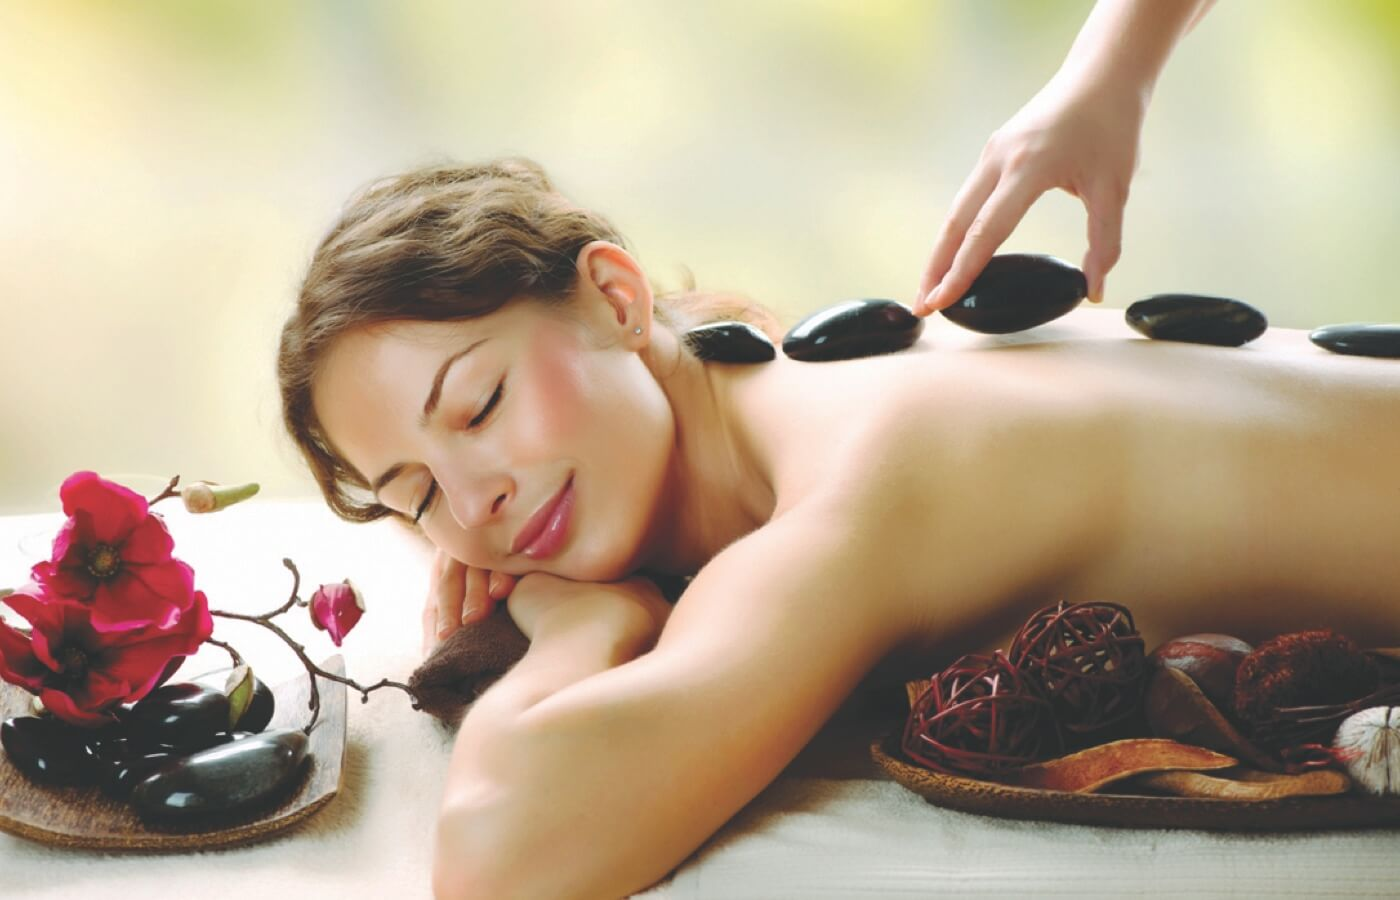 Woman enjoying relaxing massage with stones